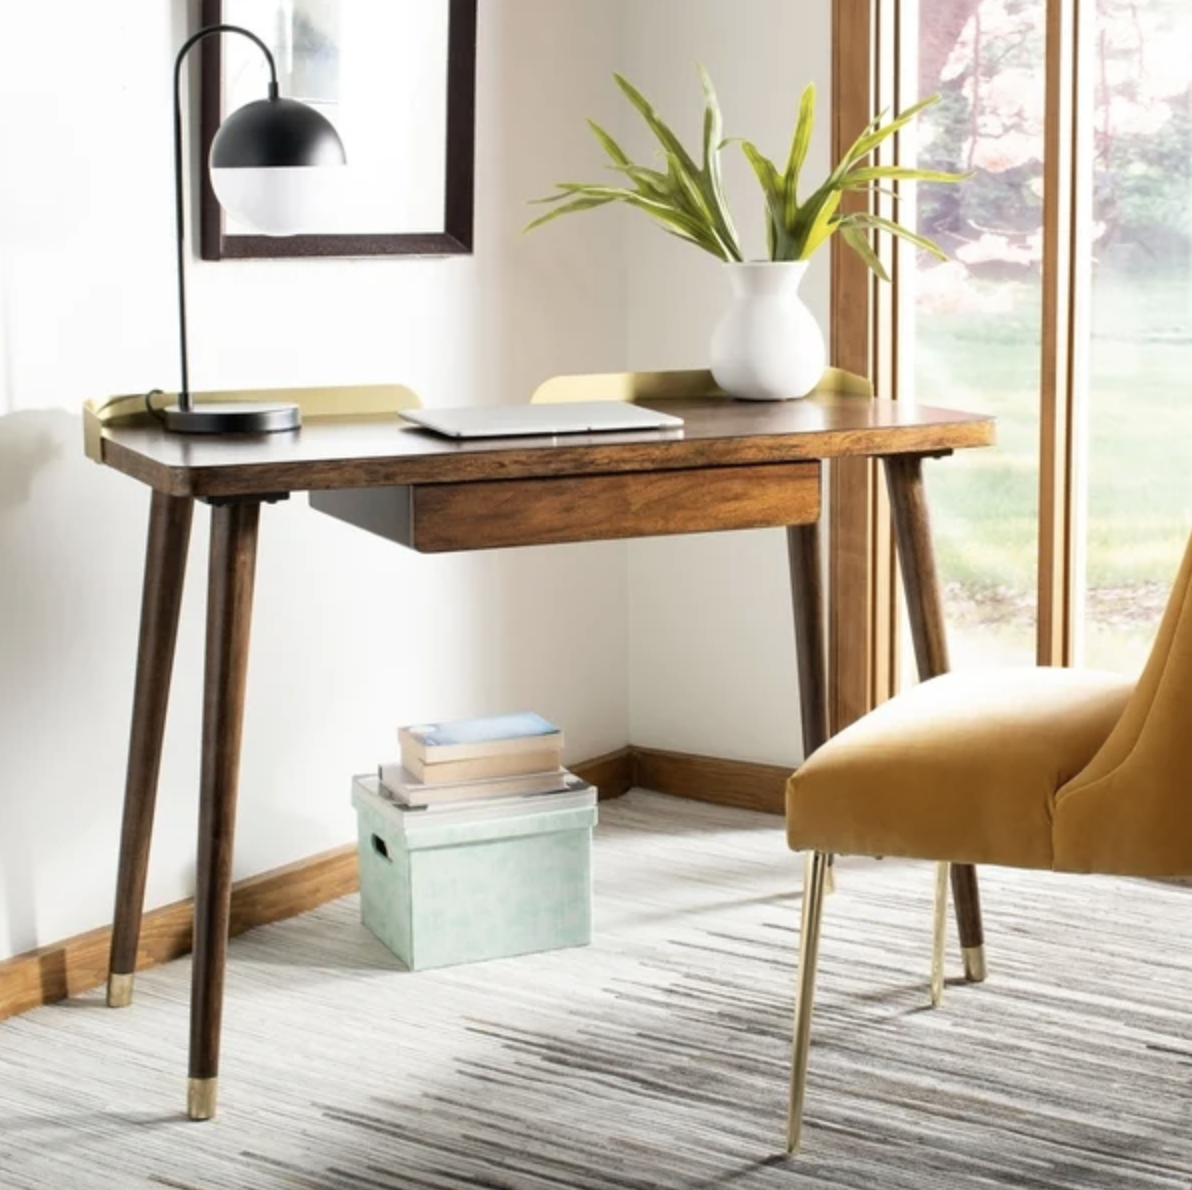 10 Midcentury Modern Desks That Double as Home Decor